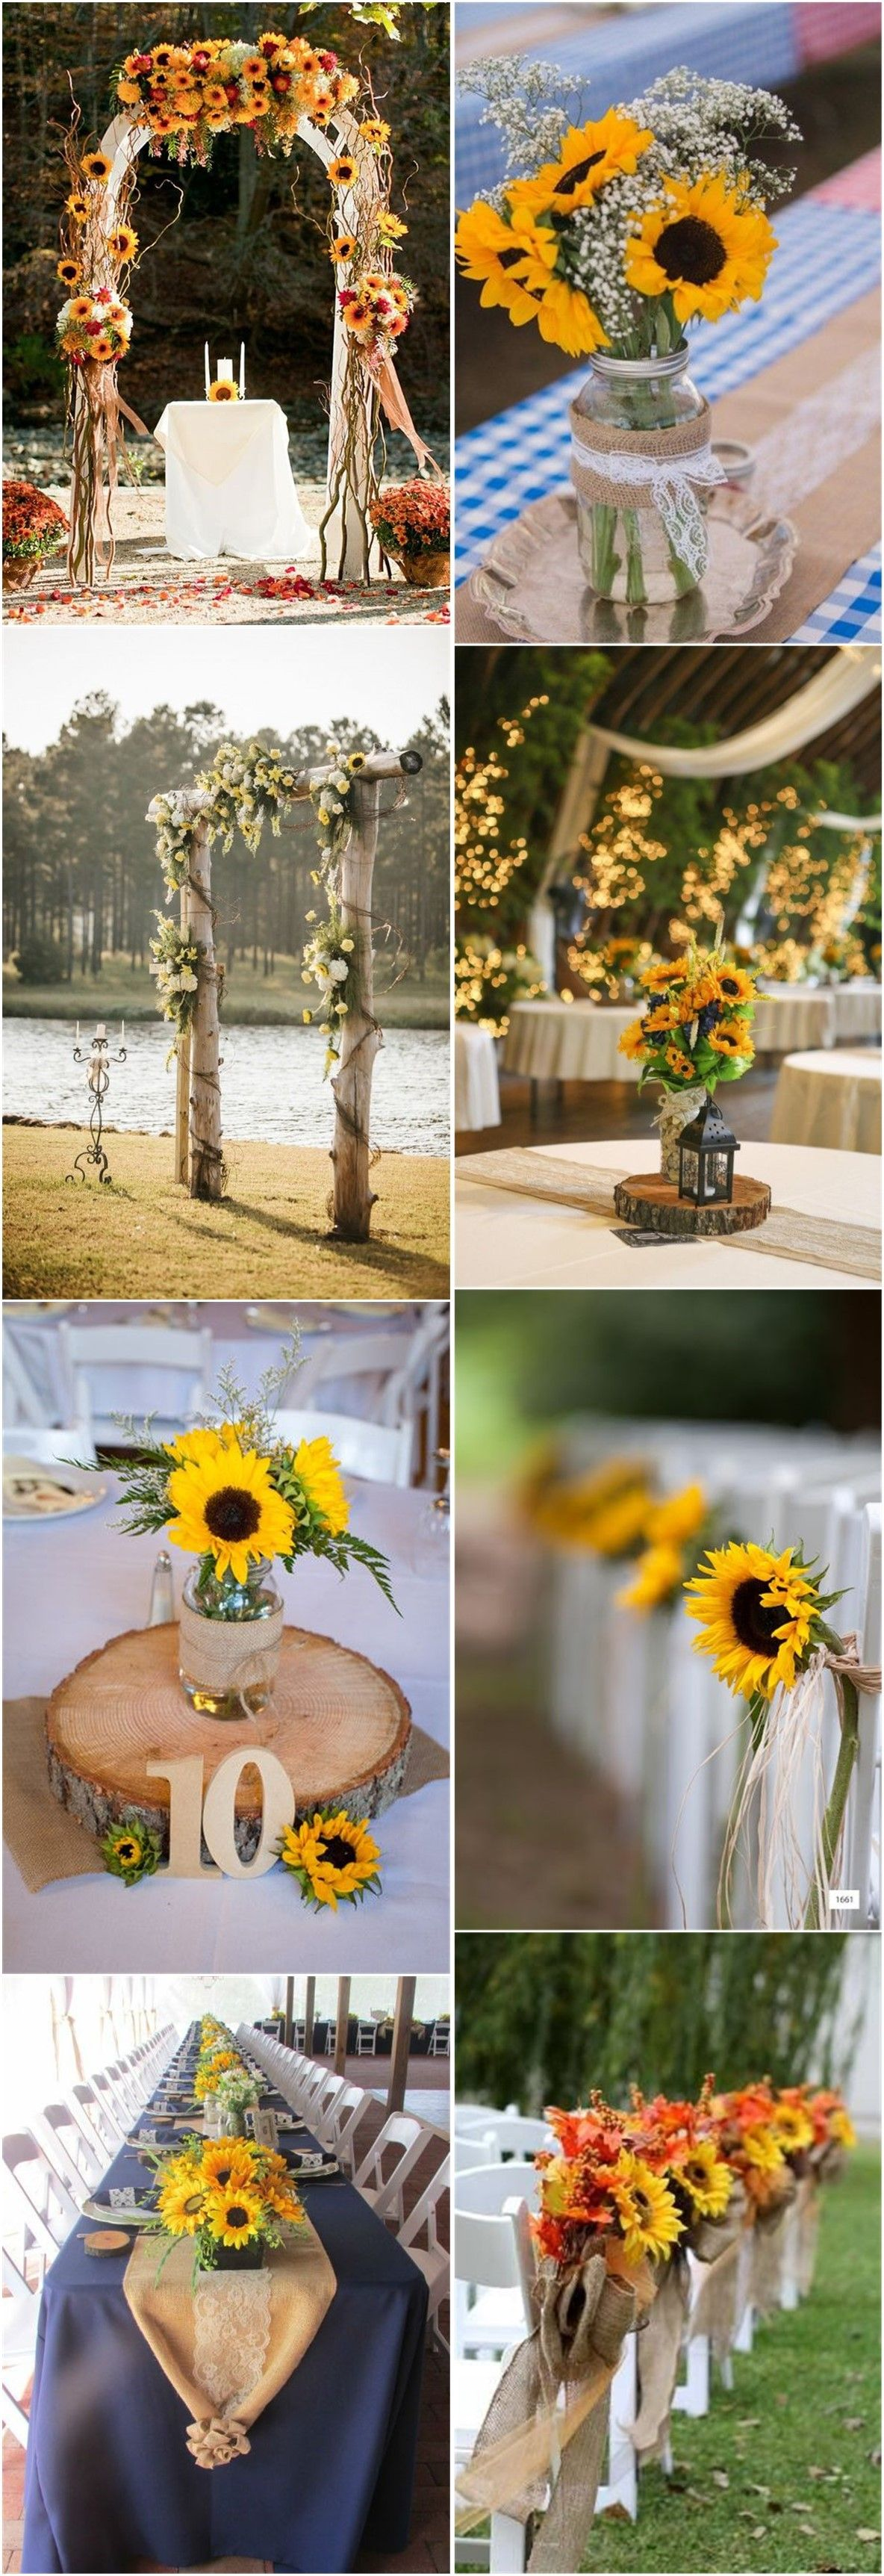 23 bright sunflower wedding decoration ideas for your rustic wedding 23 bright sunflower wedding decoration ideas for your rustic wedding junglespirit Image collections